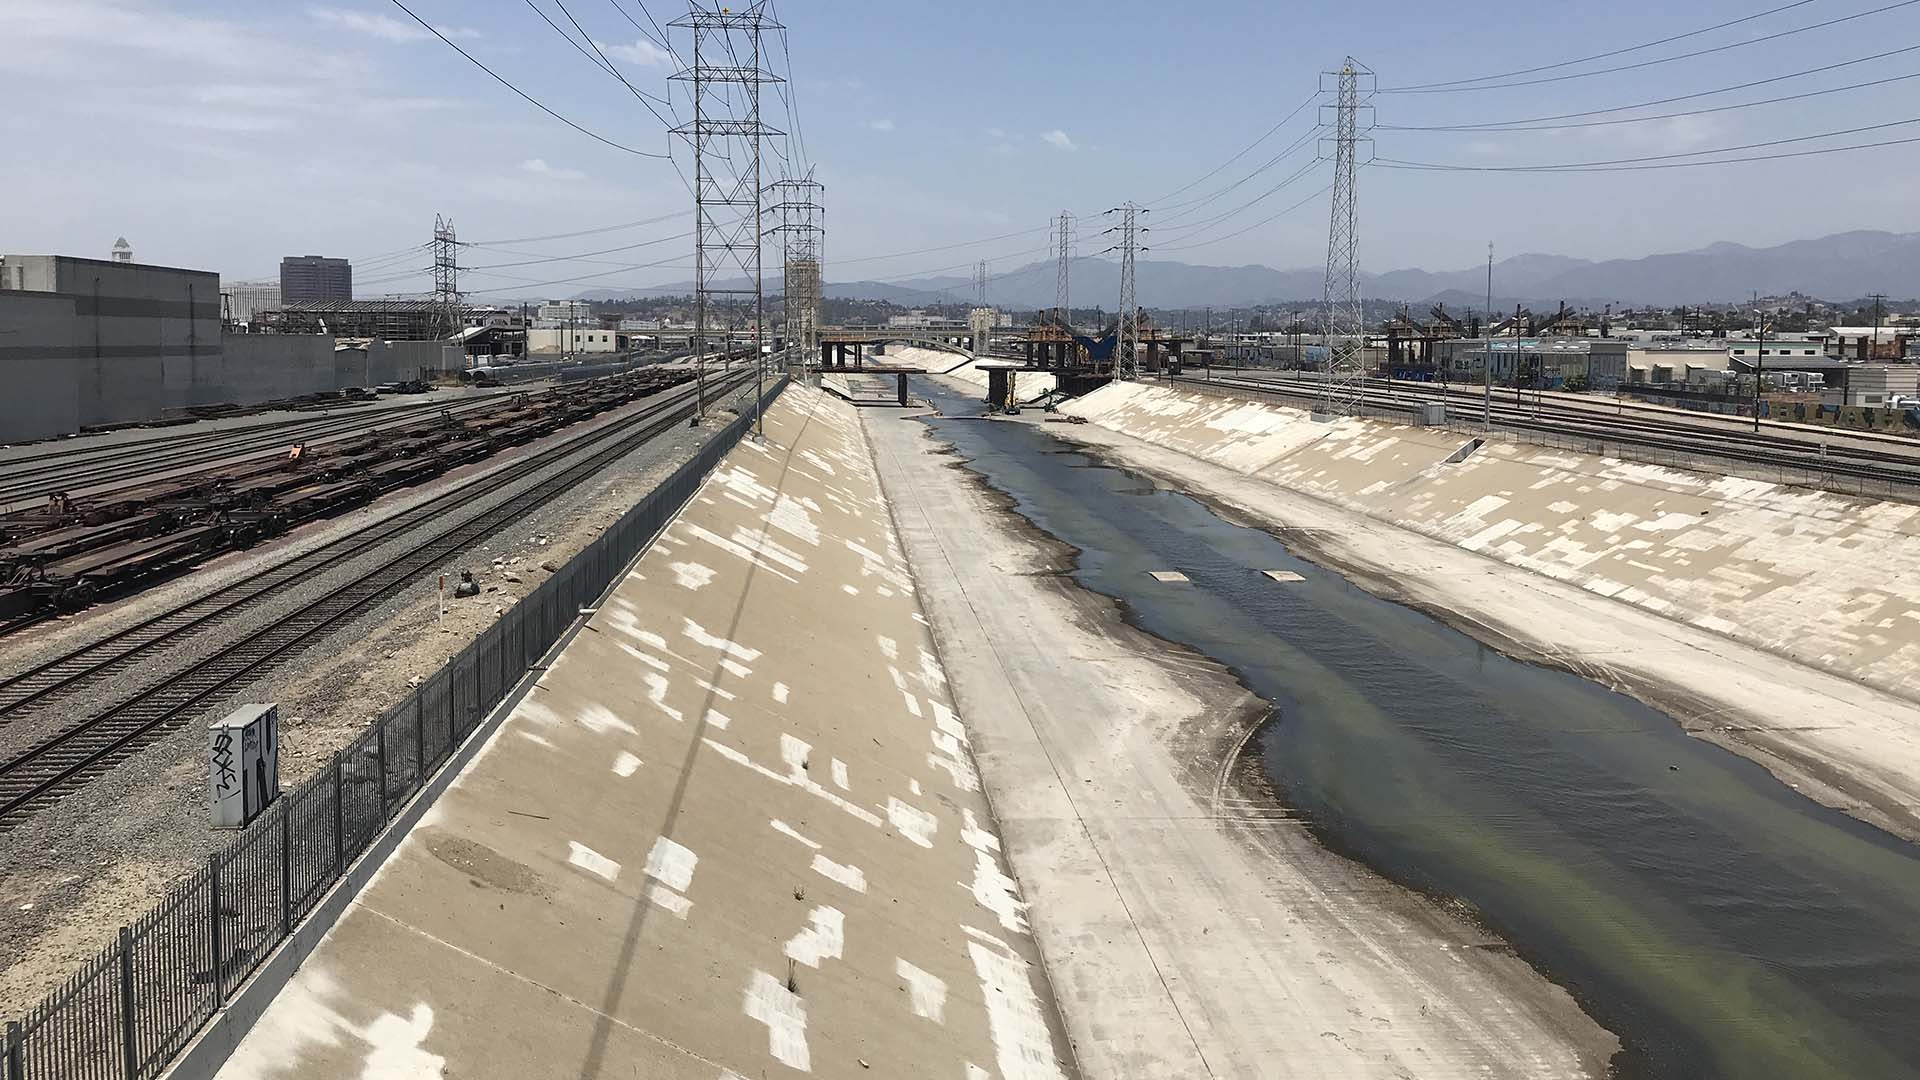 LA River project Jacobs Alta ipv Delft bike path gap closure